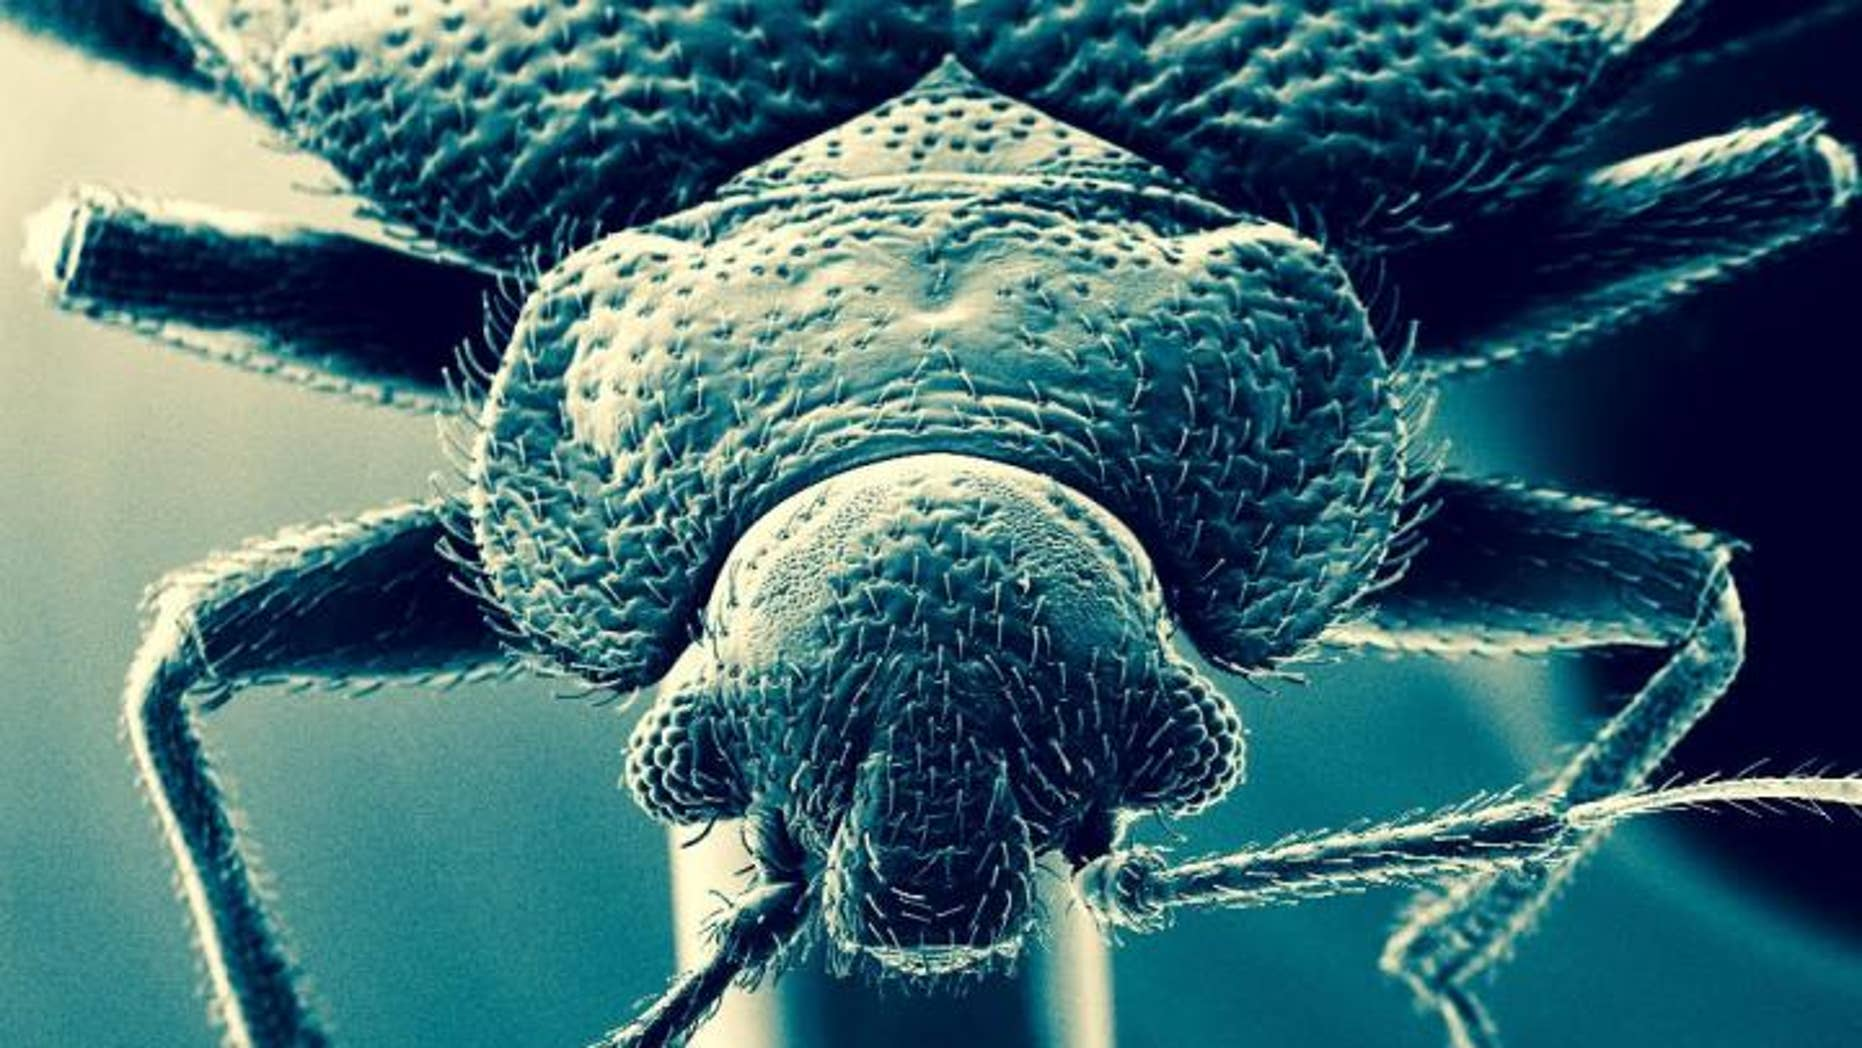 The common bed bug. (David Lilly)